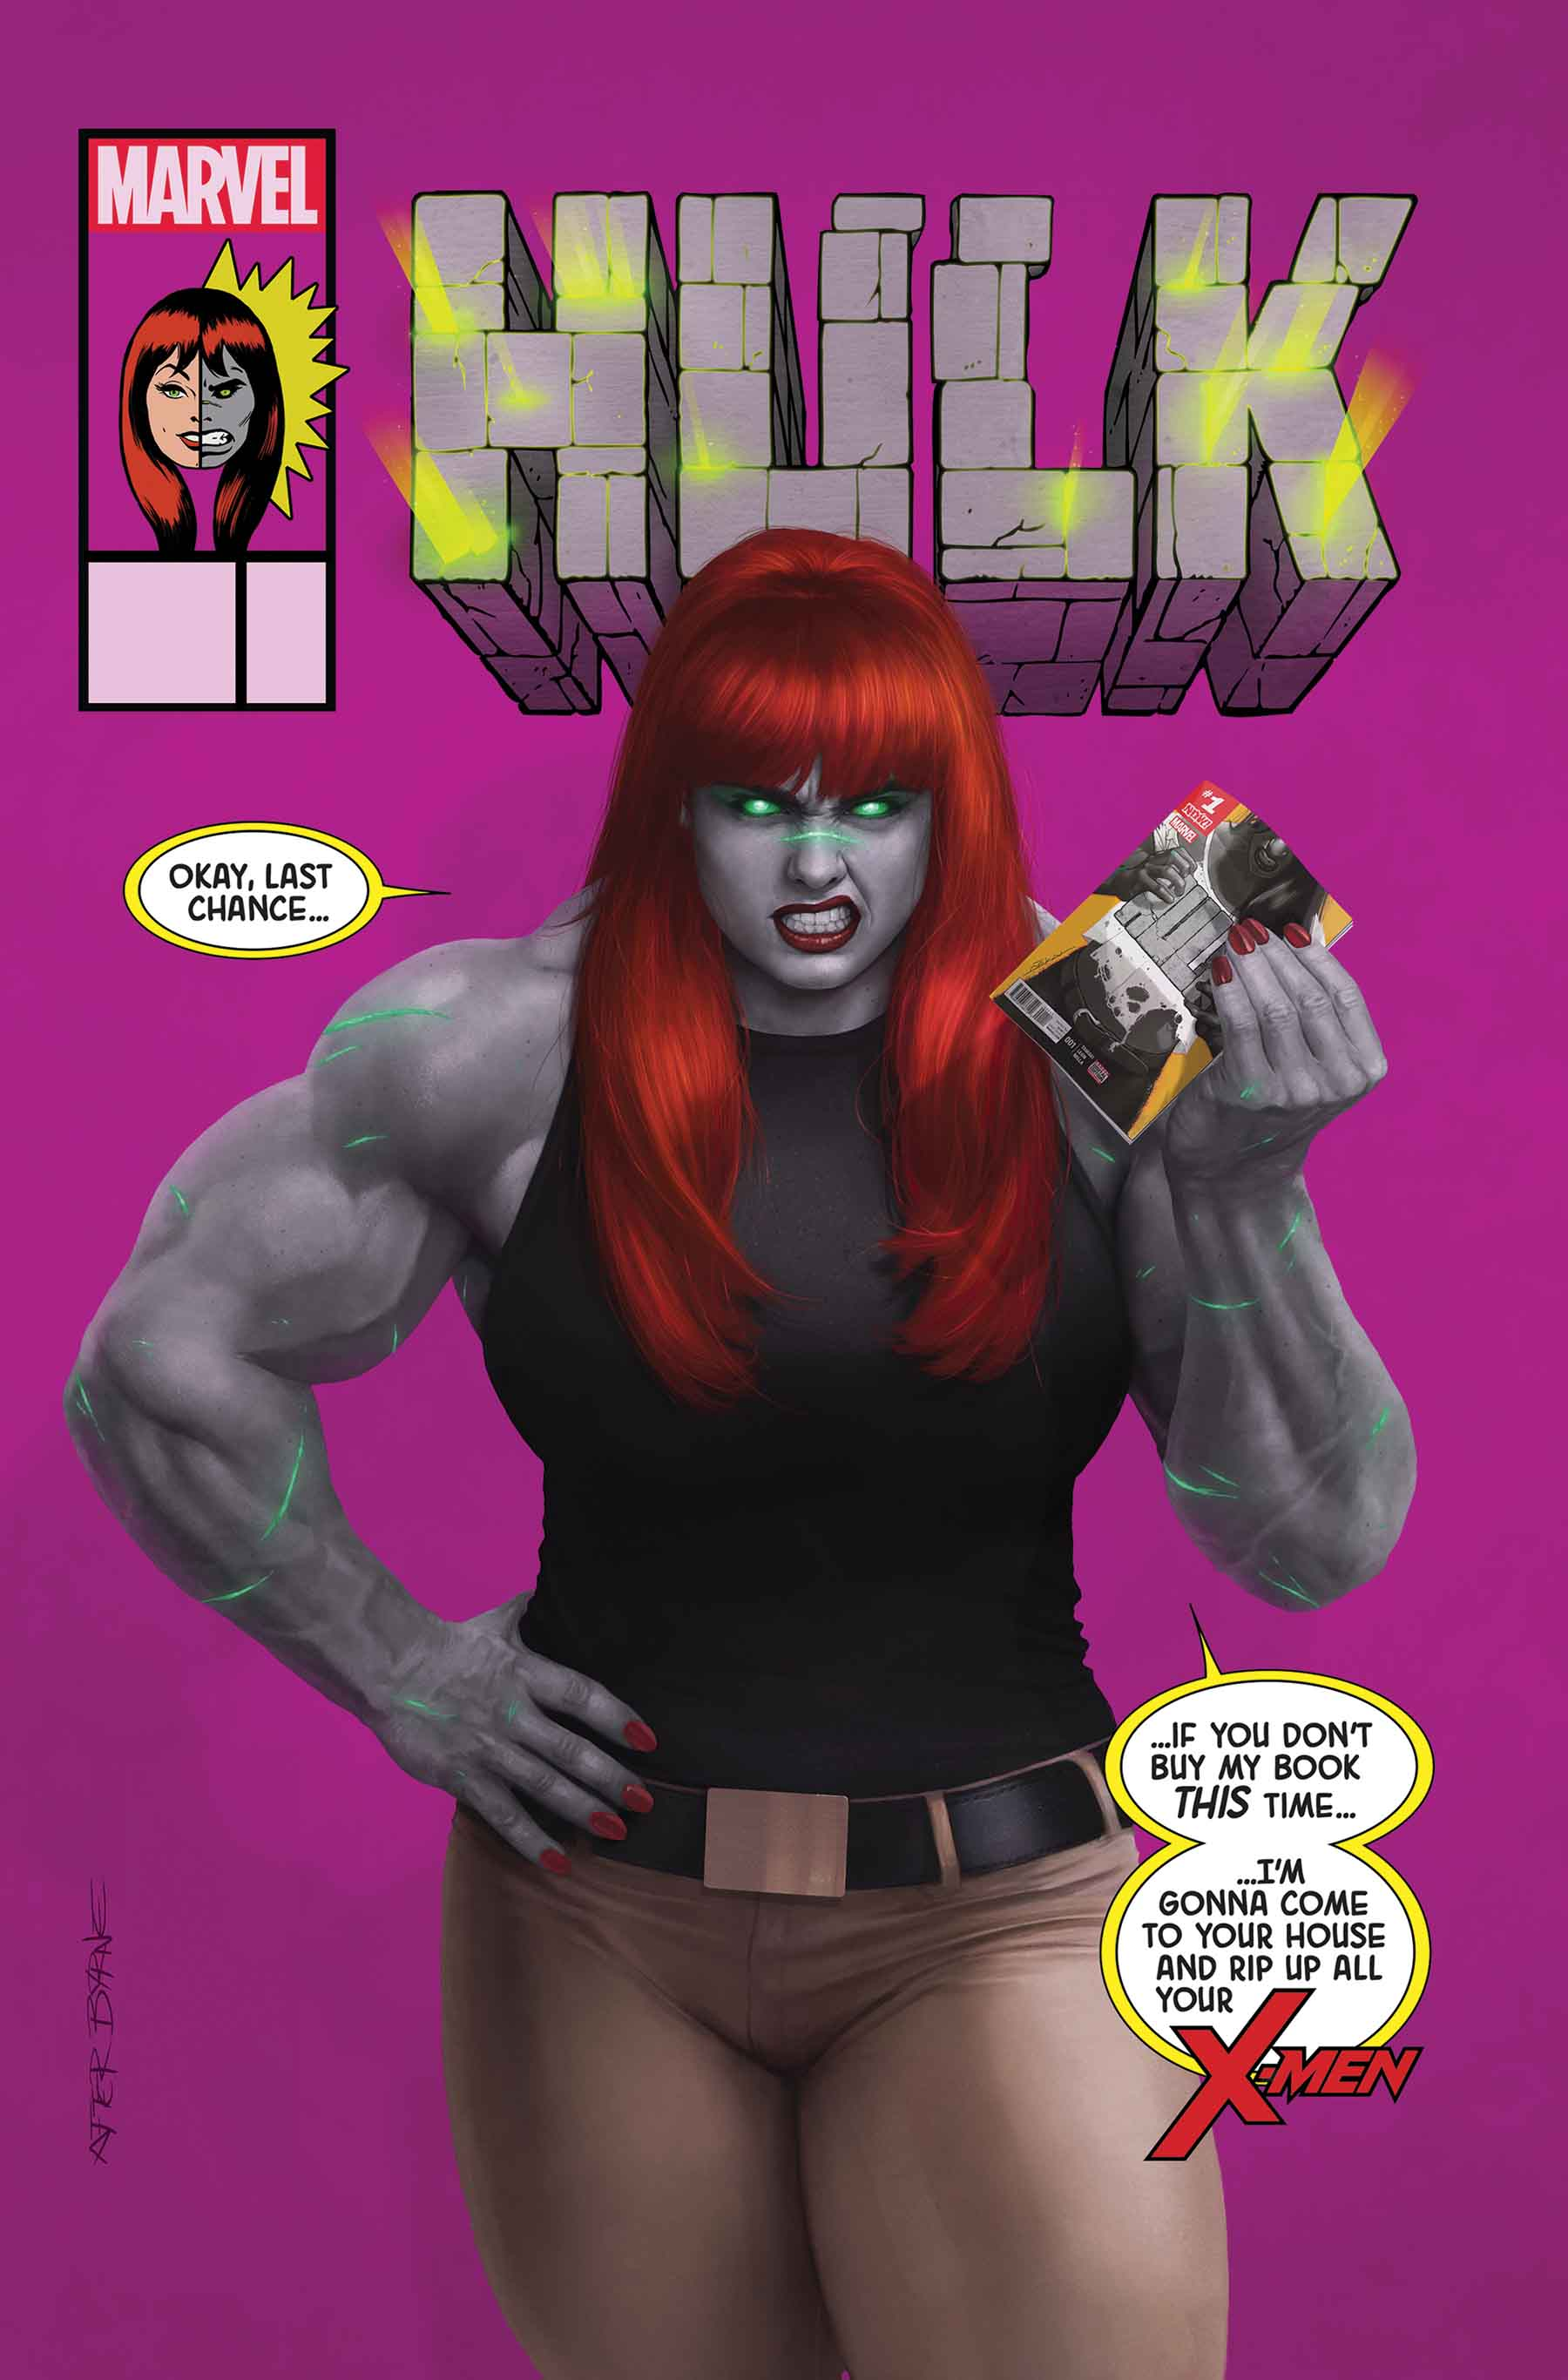 Mary Jane Watson Is Transformed Into A Variety Of Marvel Heroes On New Variant Covers